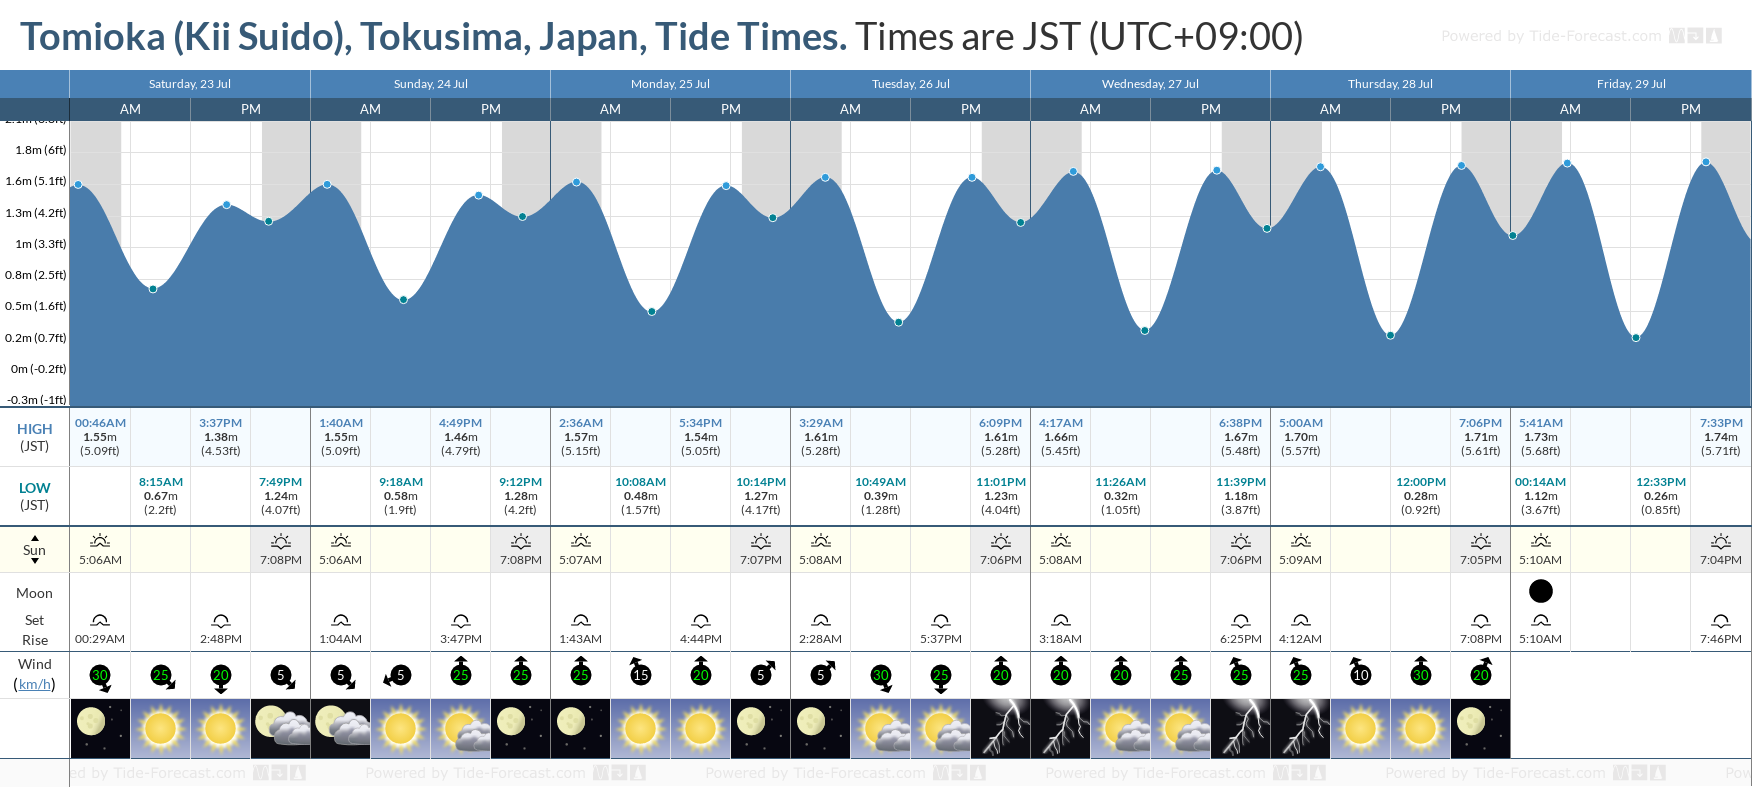 Tomioka (Kii Suido), Tokusima, Japan Tide Chart including high and low tide tide times for the next 7 days